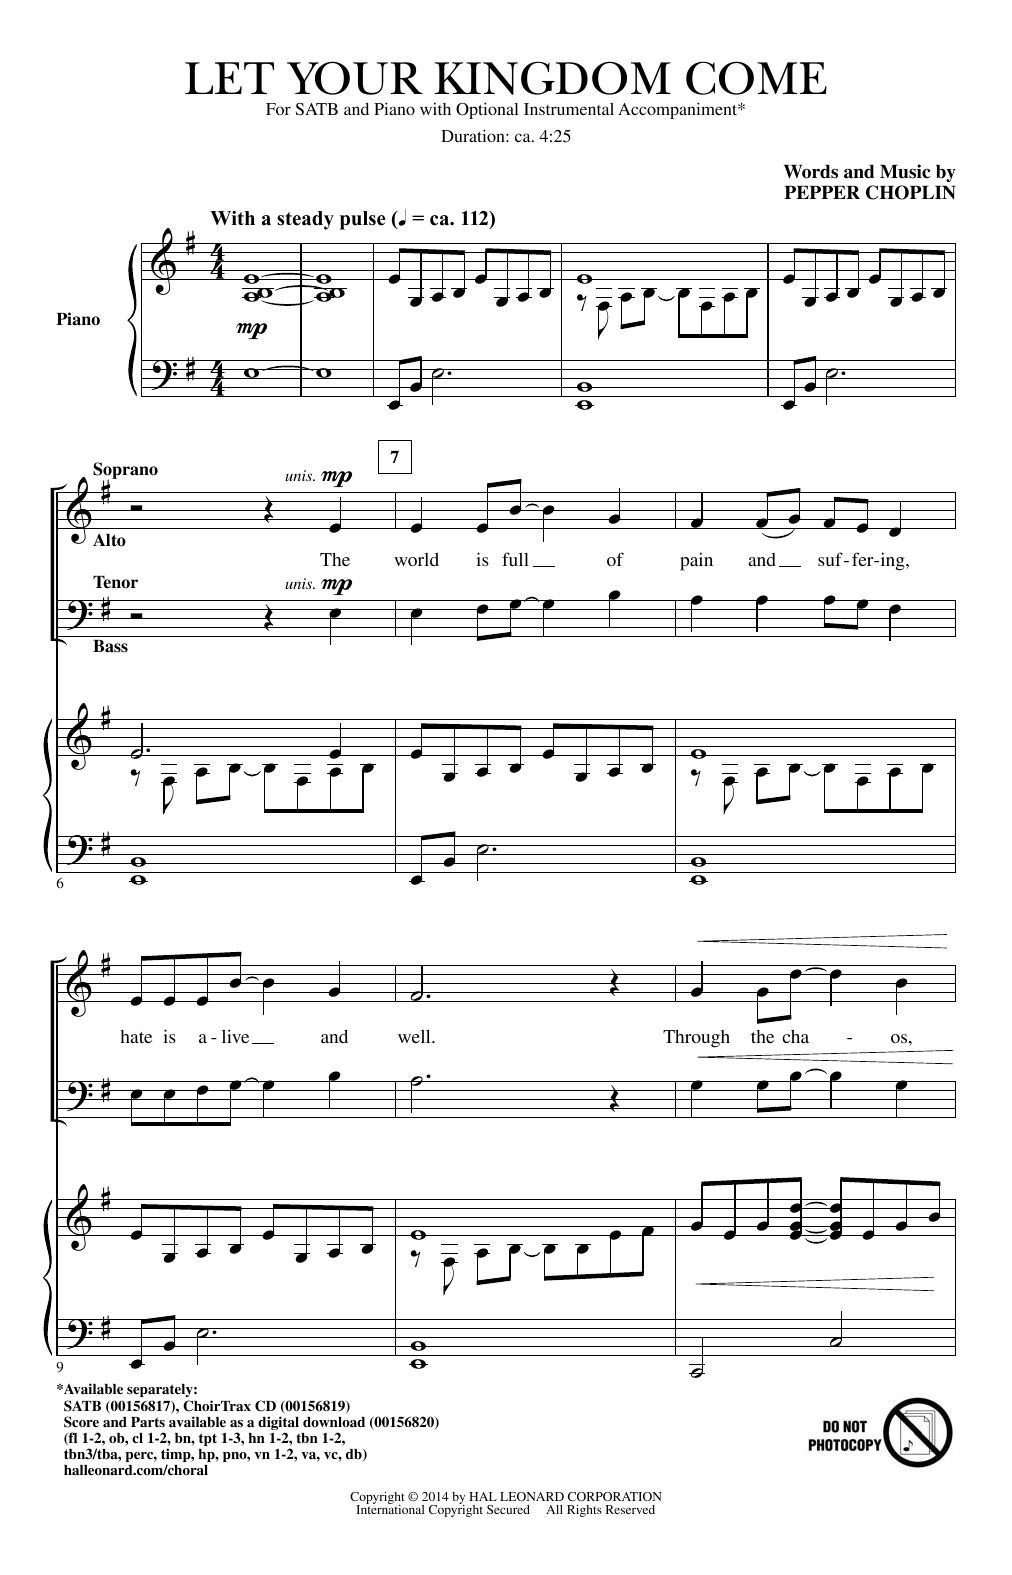 Let Your Kingdom Come (SATB Choir)